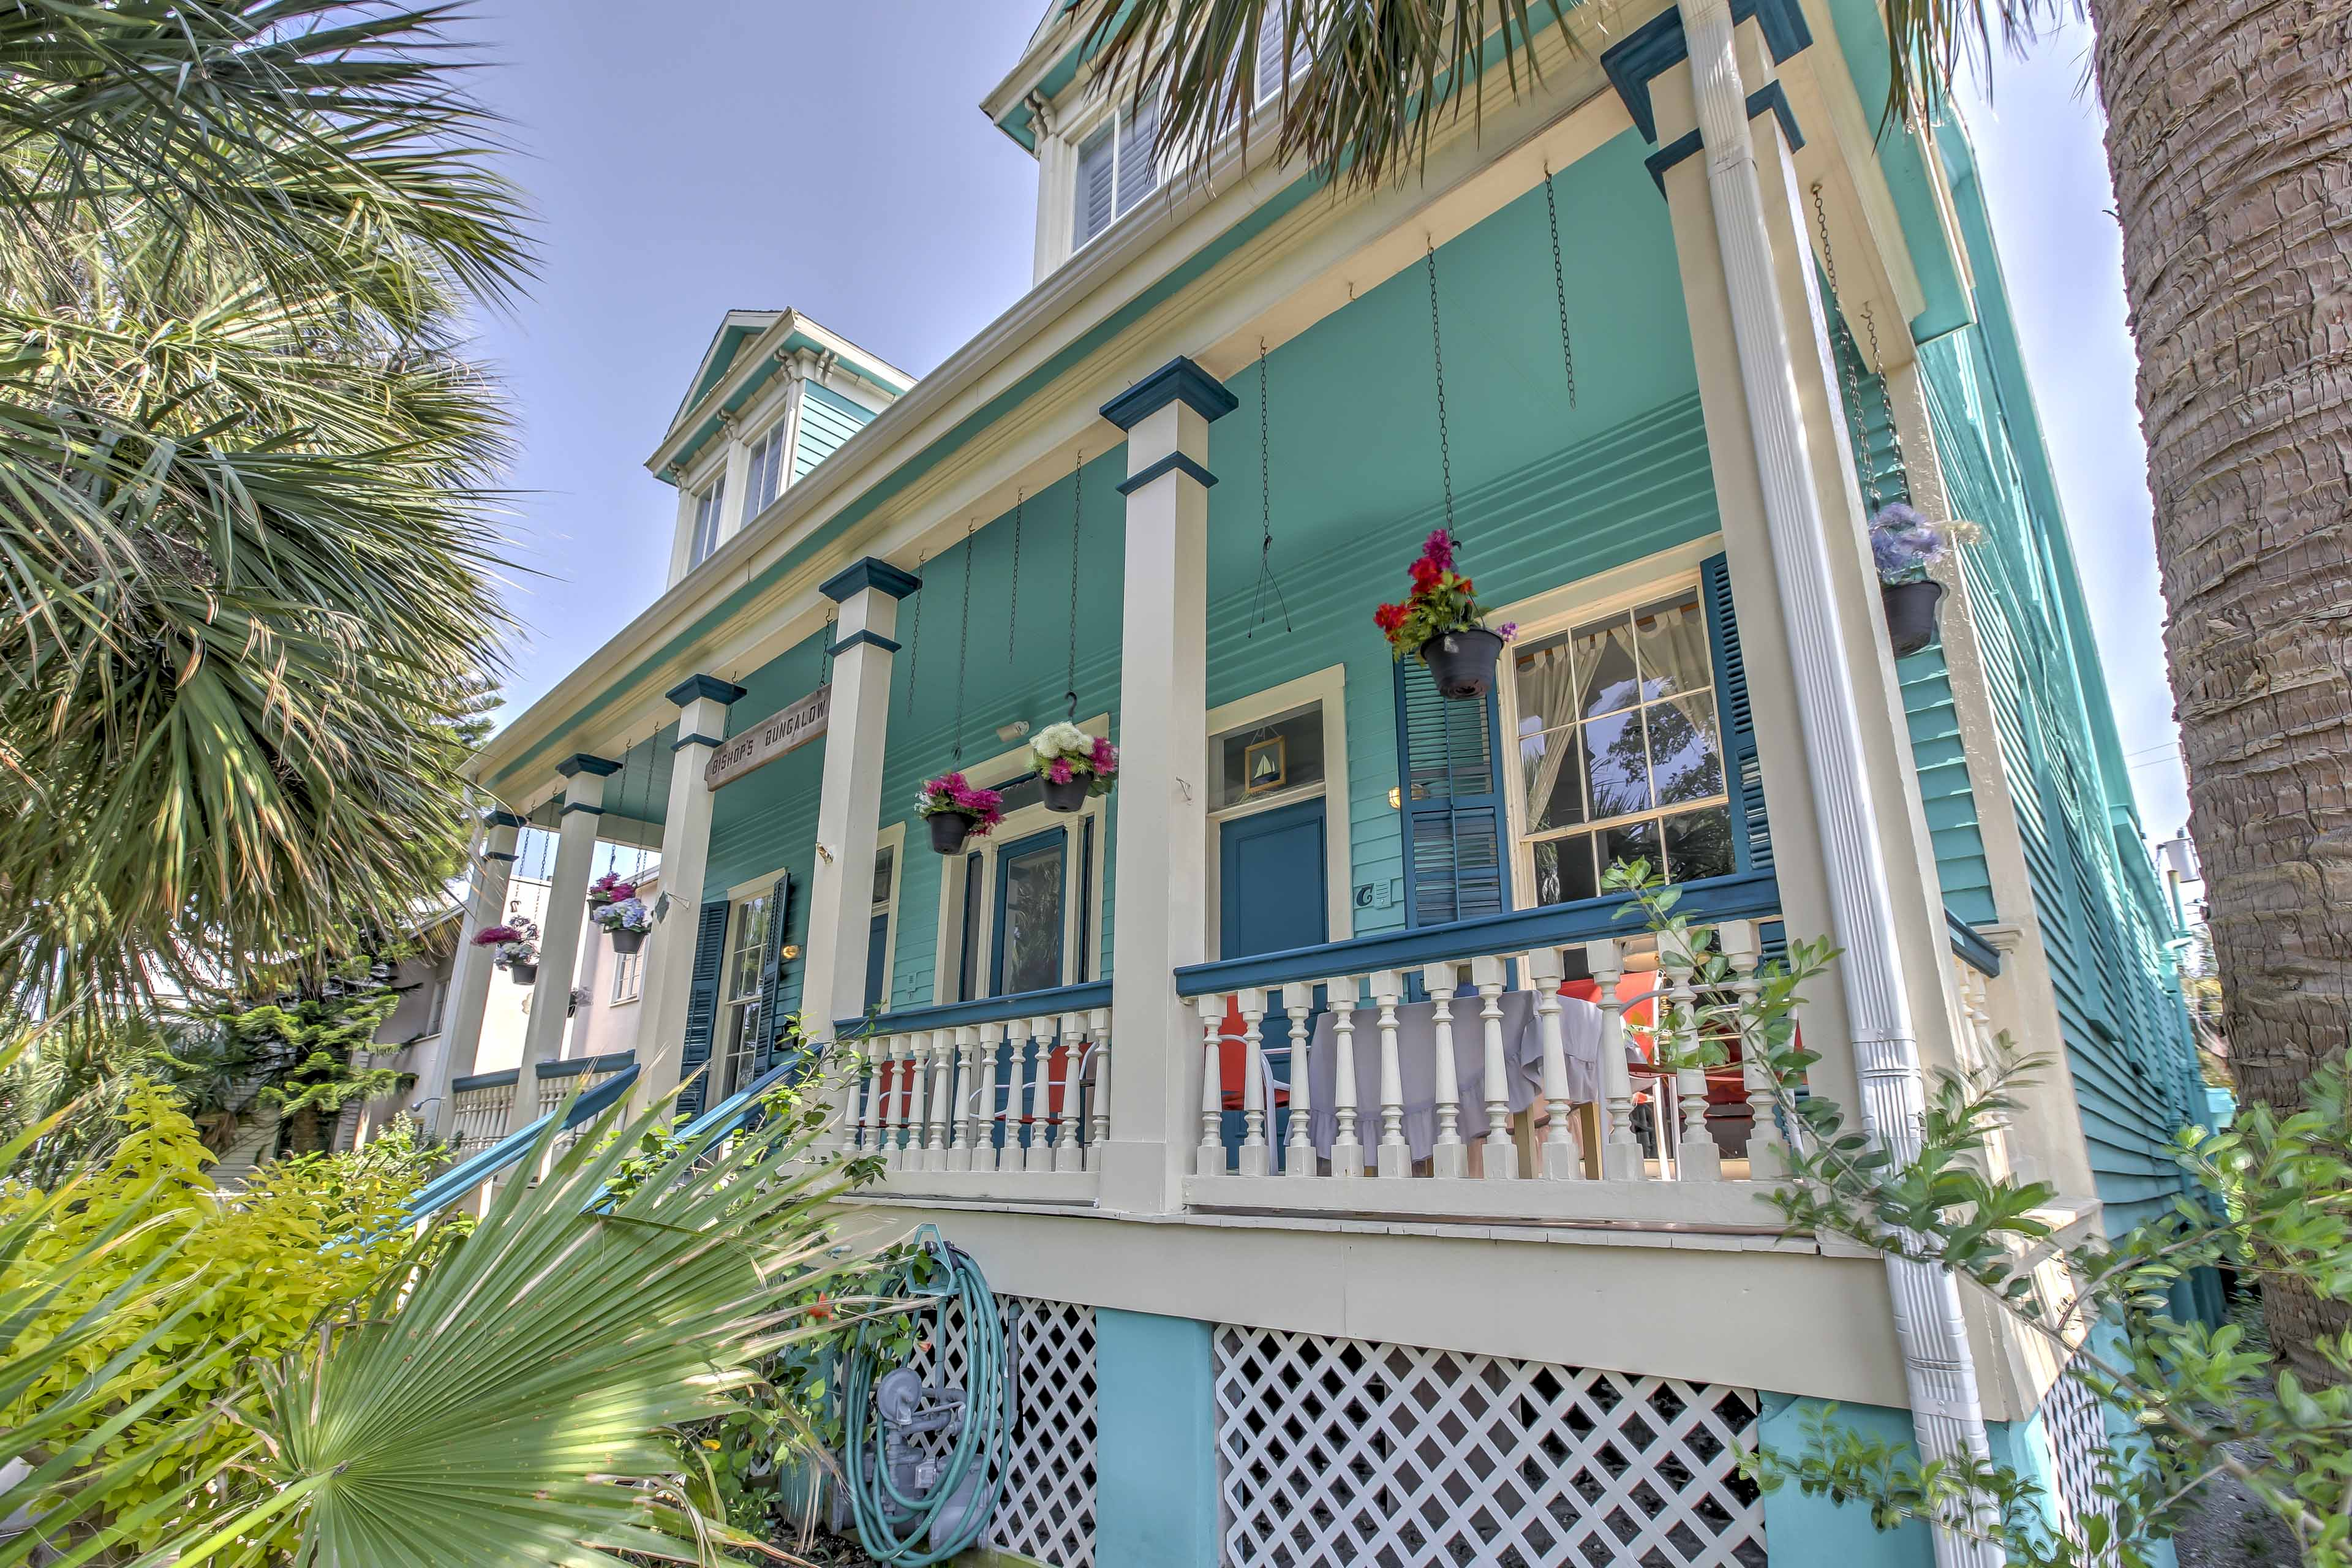 Galveston's white sandy beaches are just 6 blocks away from Bishop's Bungalow!